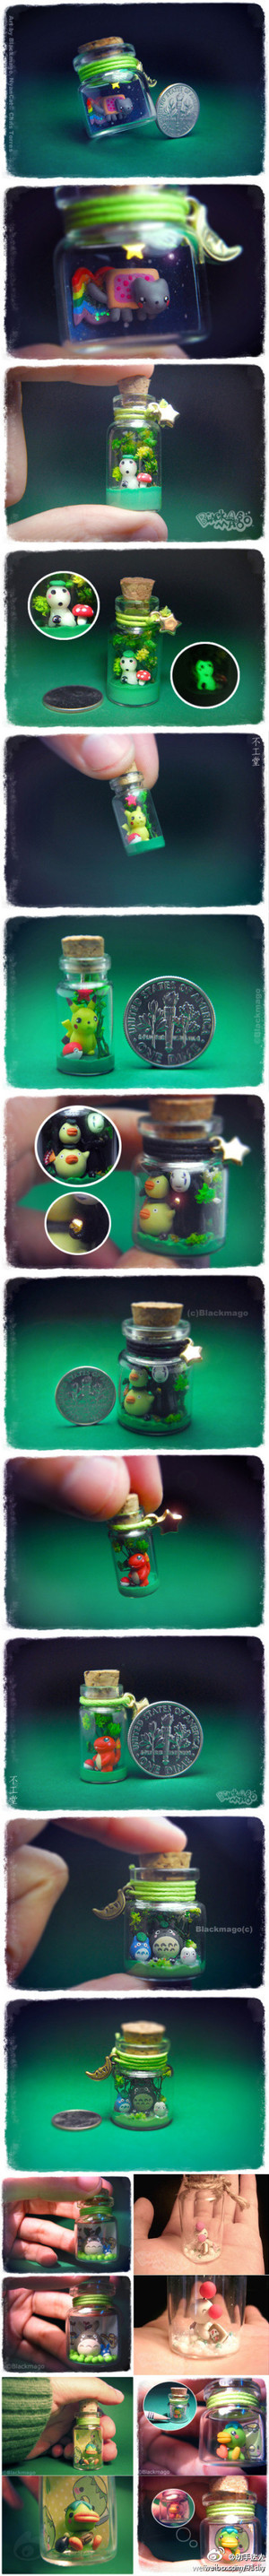 polymer scenes in tiny jars! The kids are gonna love this!